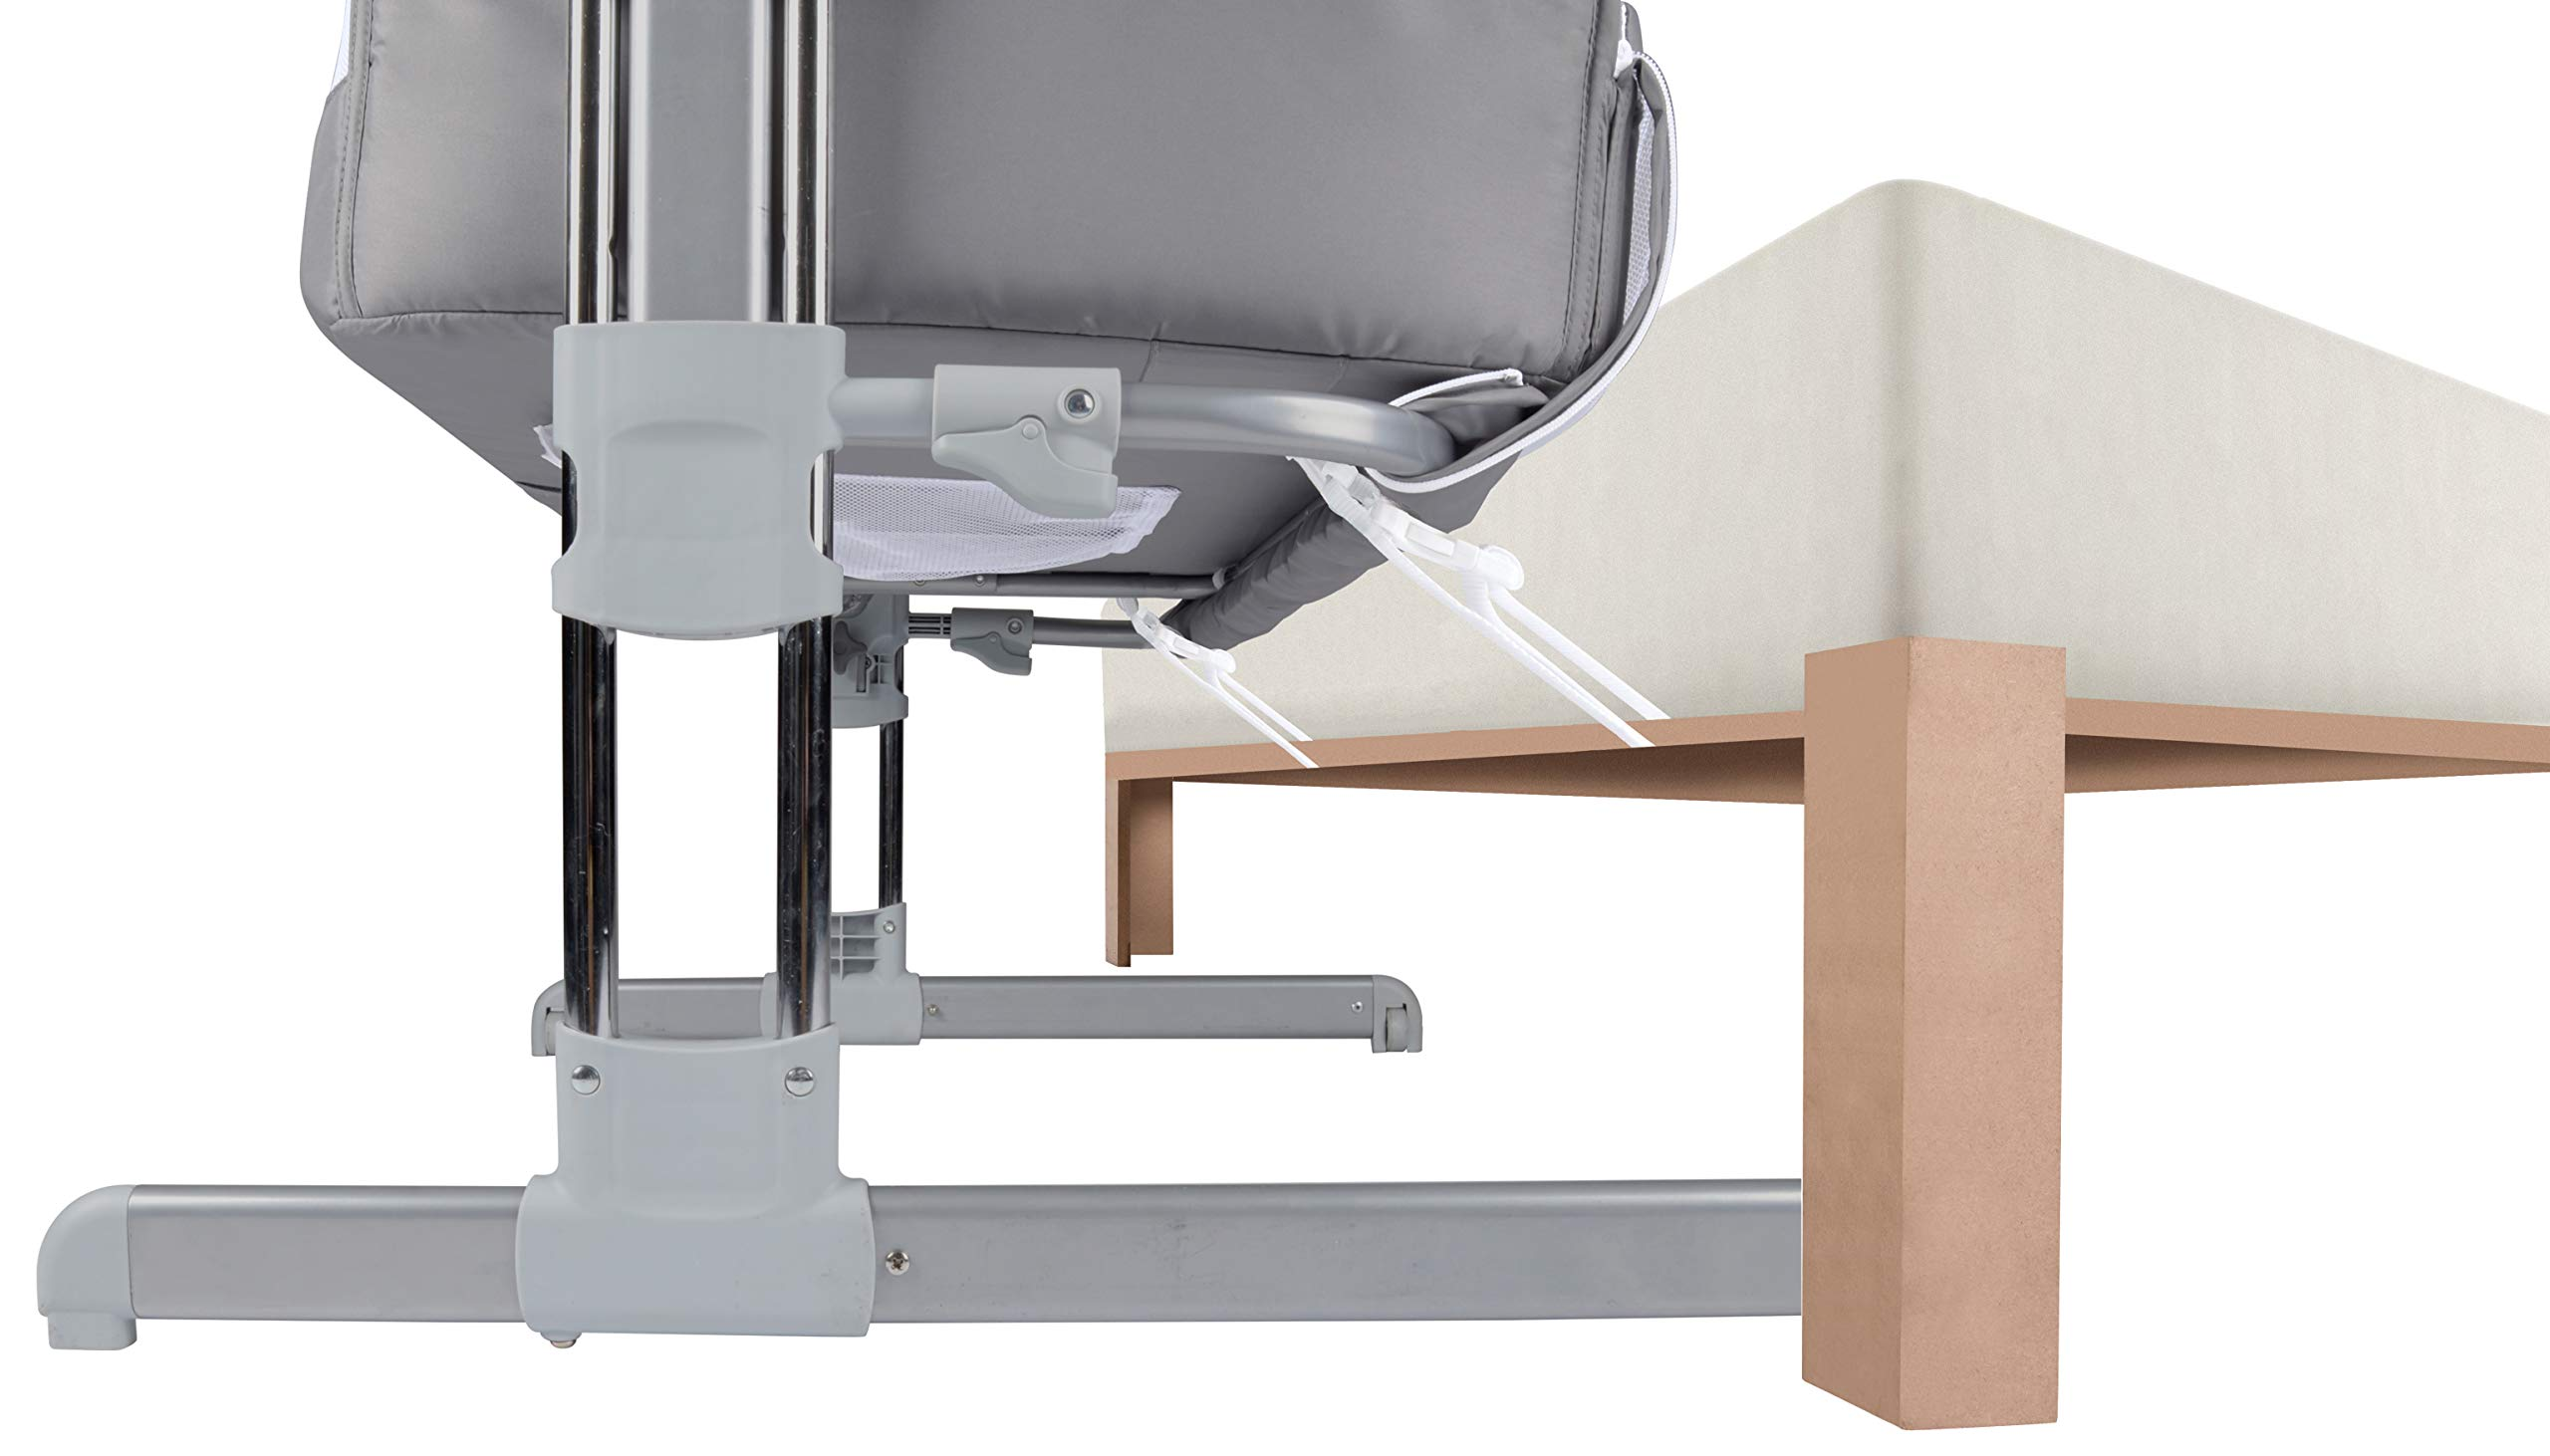 Safety 1st Calidoo Cot Cot Cot Cot Cot Bed Cot Cot Cot Cot with Recliner and 7 Heights Travel Cot for Newborn - Warm Grey Safety 1st Crib side bed for newborns with opening edge to be attached to the parents' bed and sleep next to the child in safety Height adjustable to 7 levels and can be reclined to an anti-backflow position Adjustable feet to be attached to beds with storage box 6